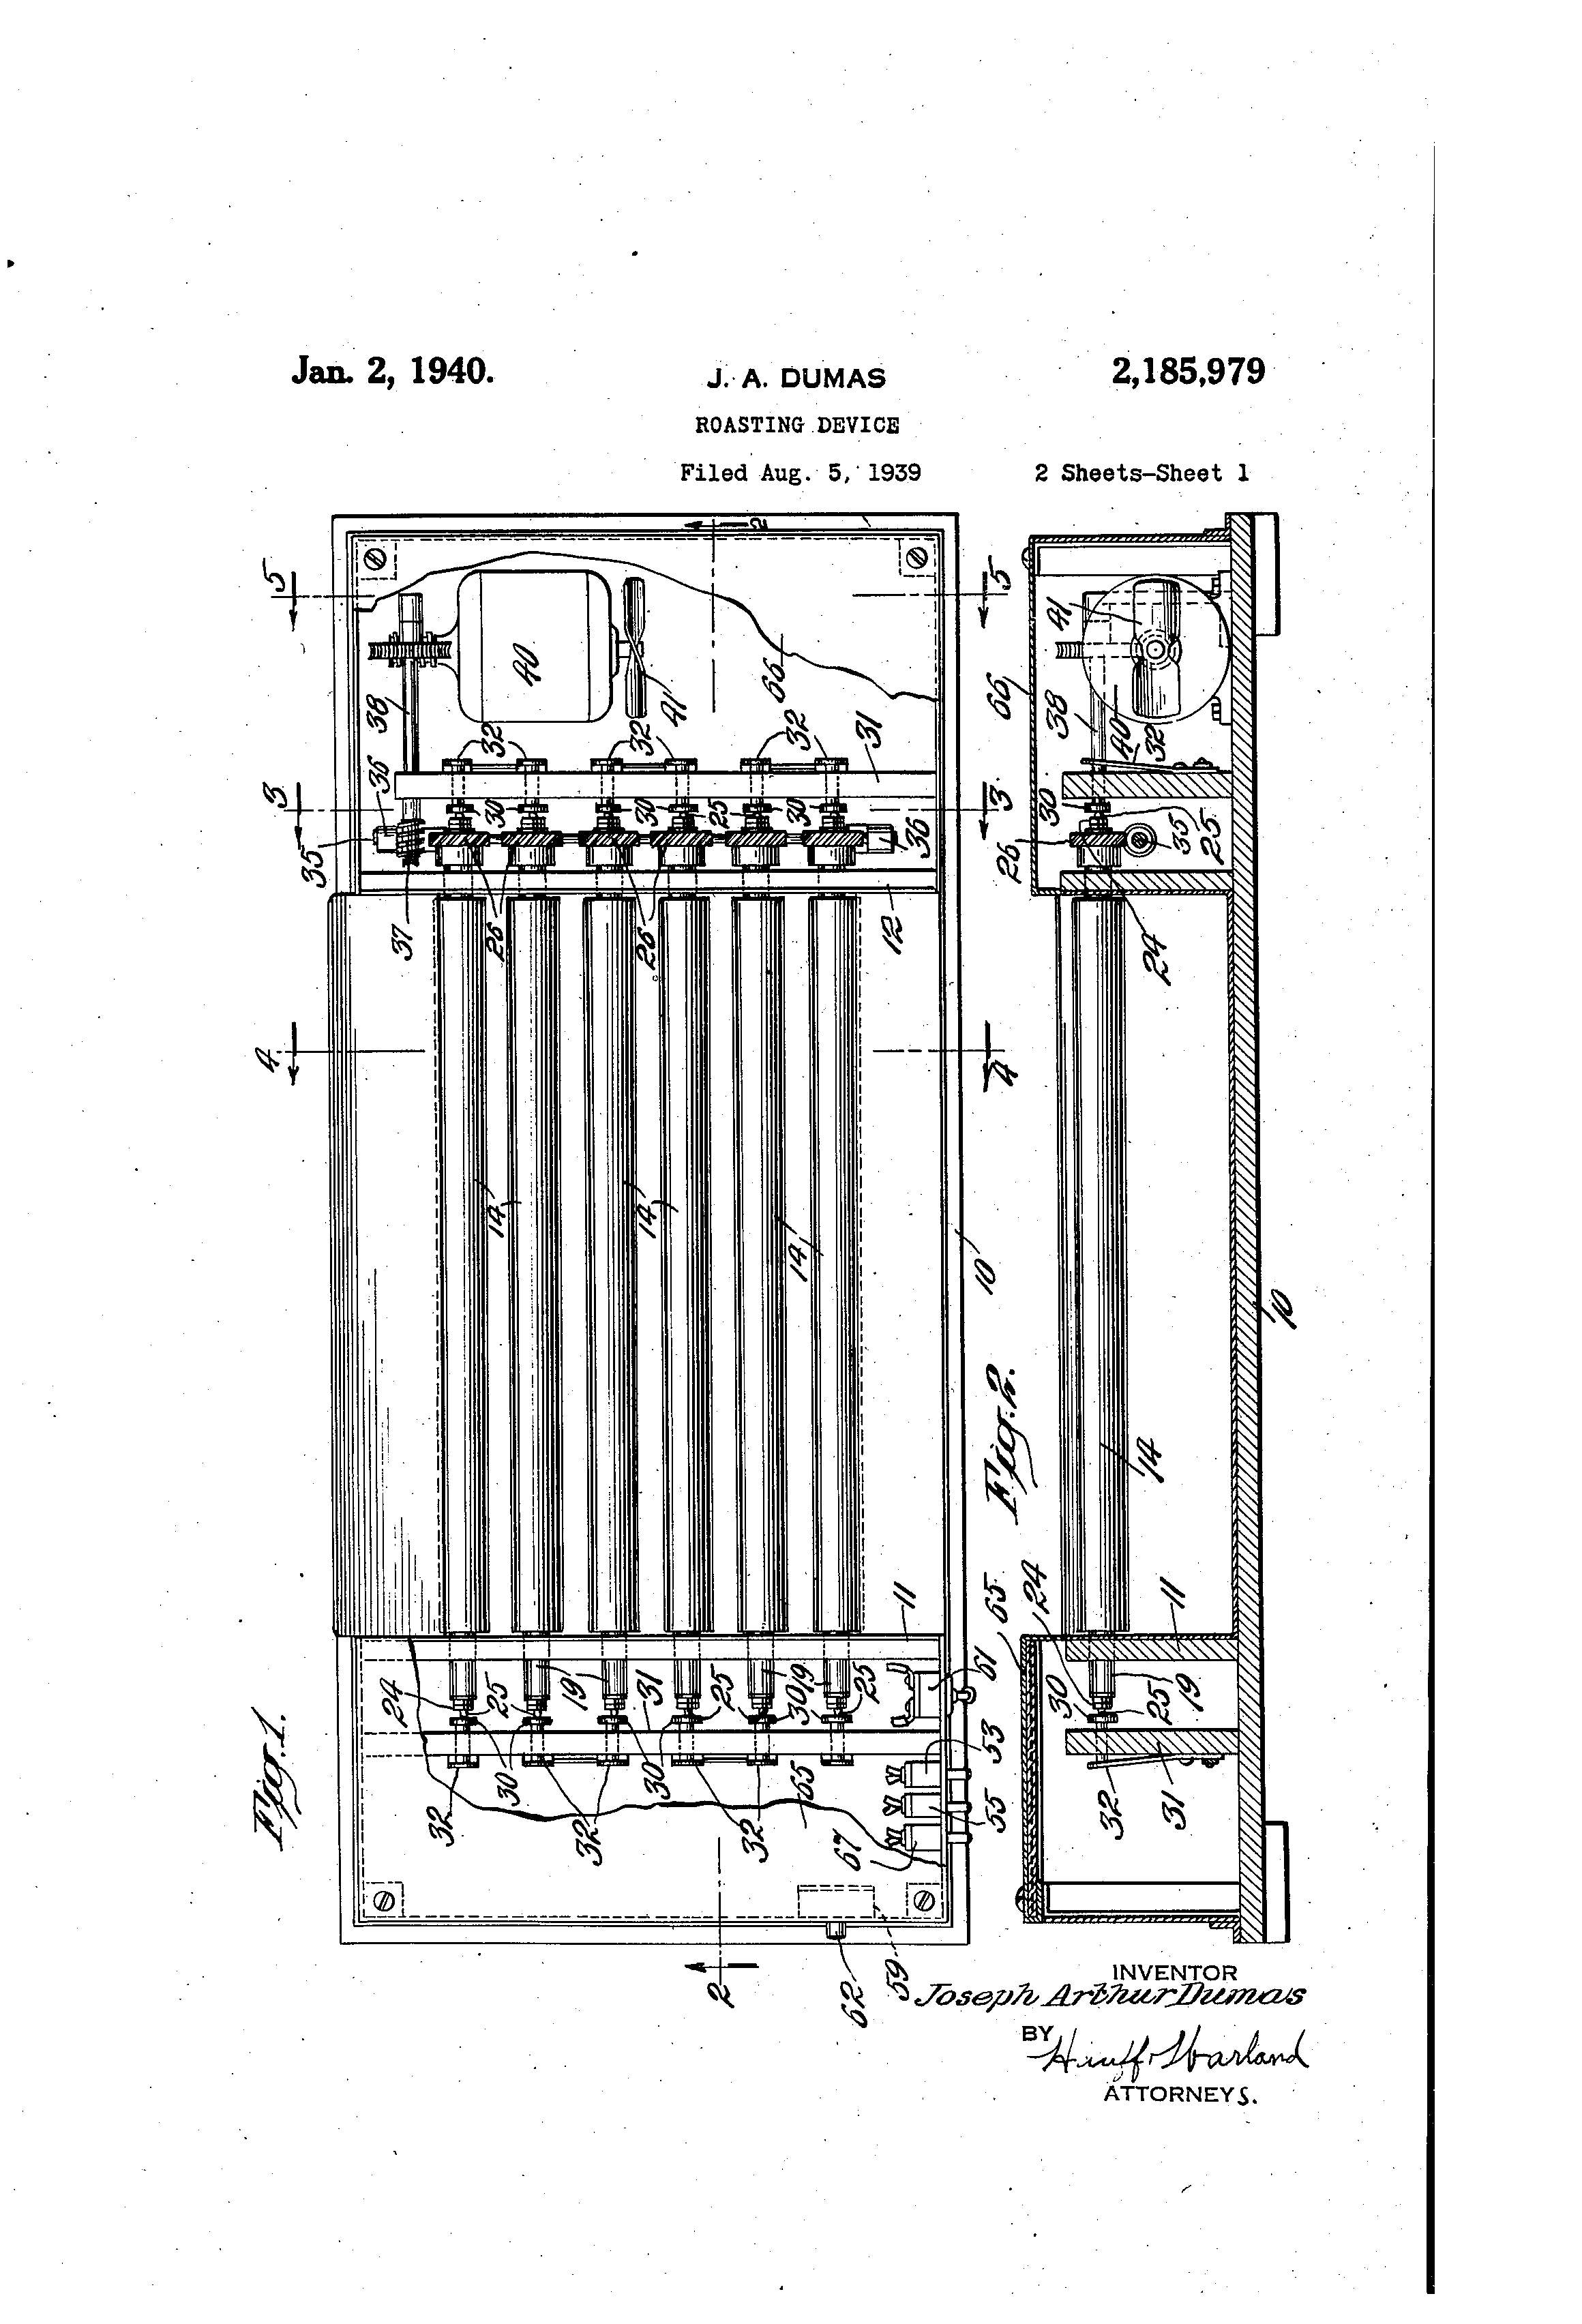 Roasting Device US 2185979 A; source Google Patents